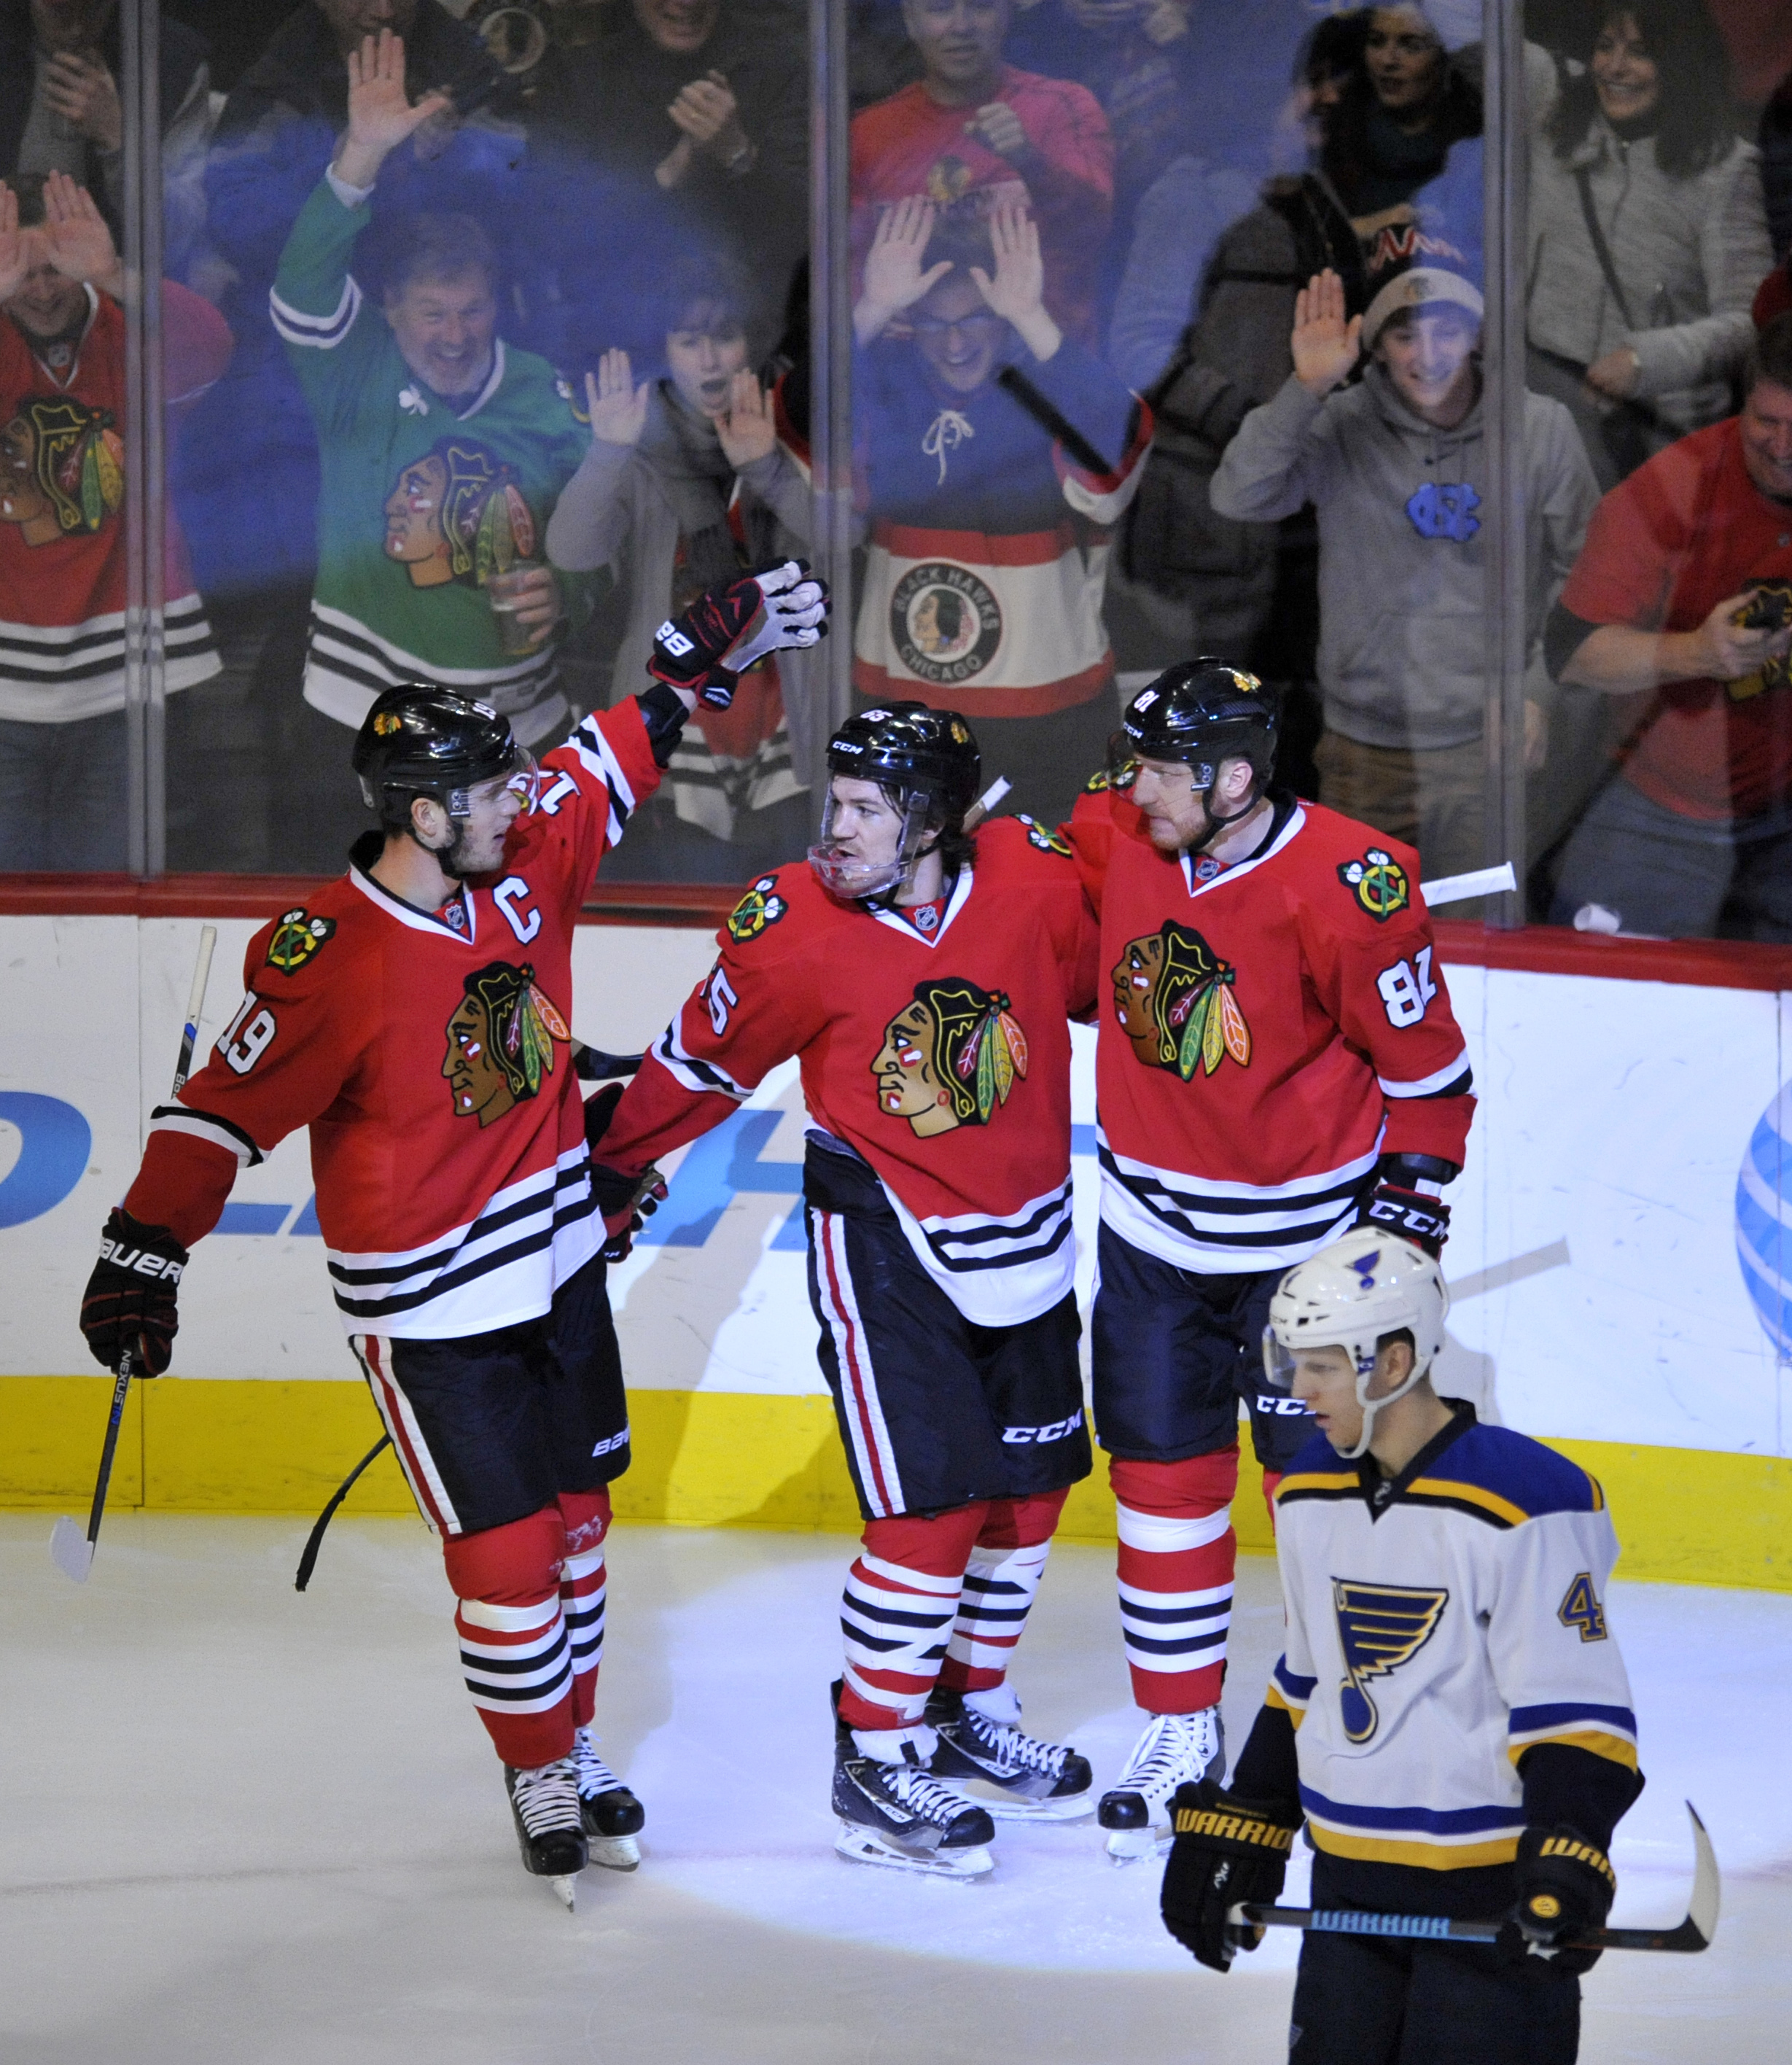 Chicago Blackhawks' Andrew Shaw (65) celebrates with teammates Jonathan Toews (19) and Marian Hossa (81), of Slovakia, after scoring a goal during the third period of a hockey game against the St. Louis Blues Sunday, Jan. 24, 2016, in Chicago. Chicago won